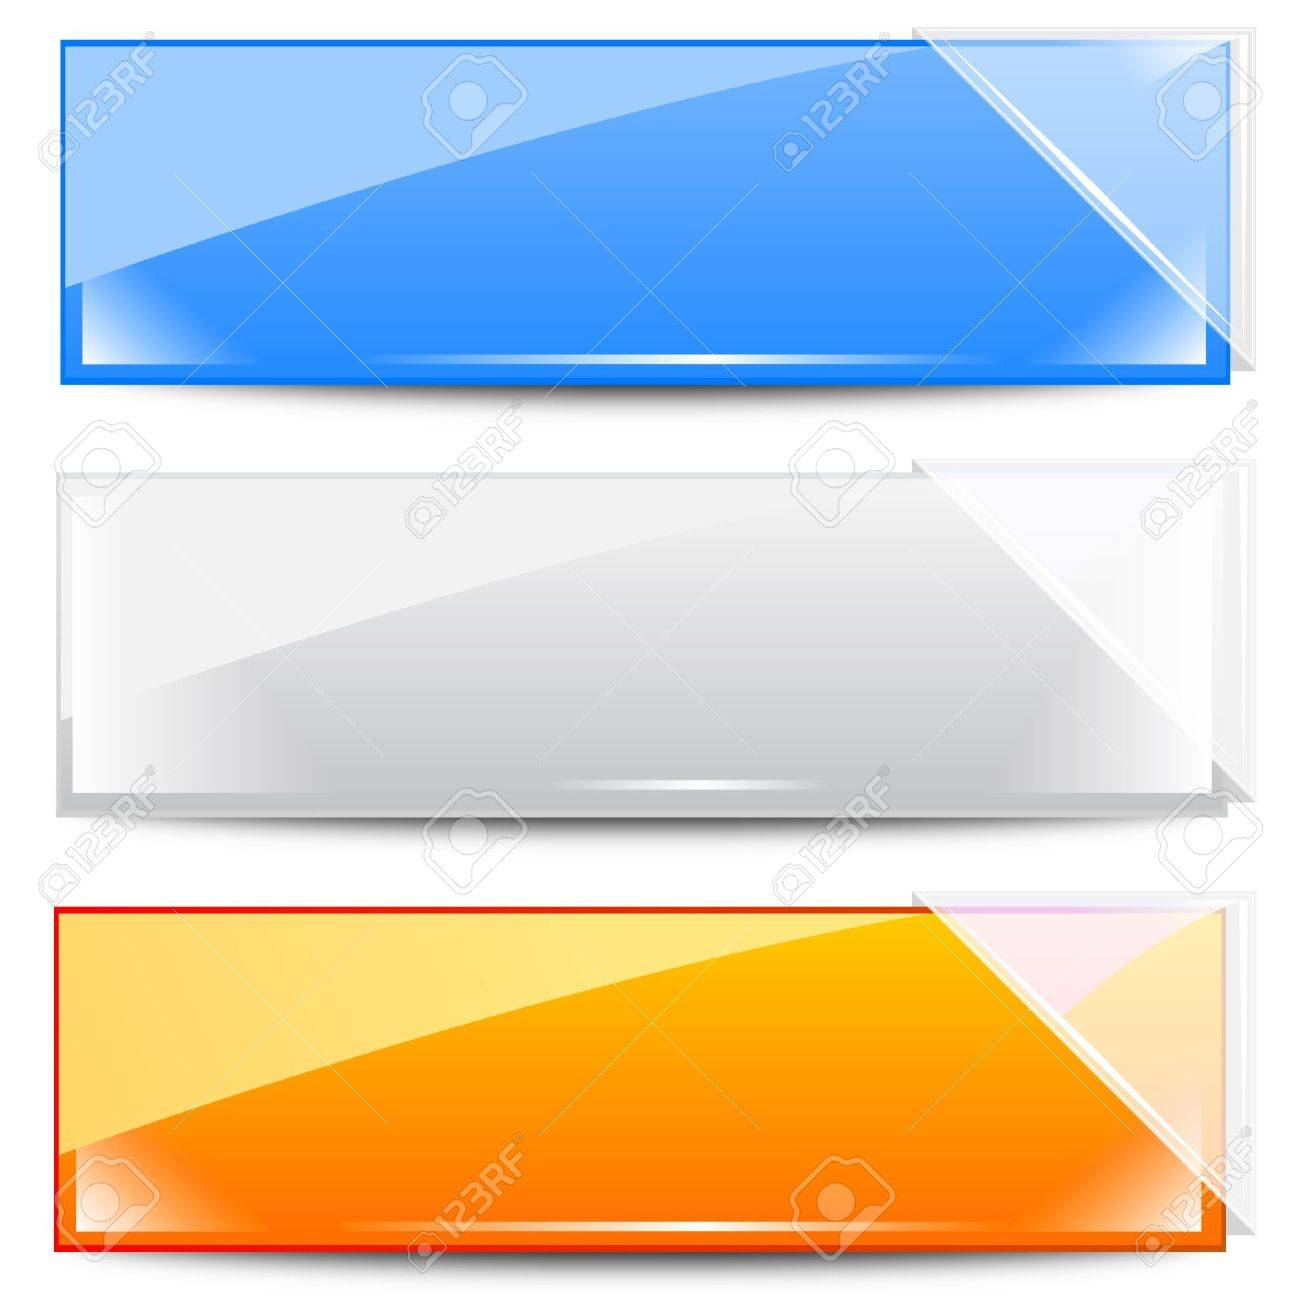 Banners - Frames with White Glass Ribbons Stock Vector - 10281748